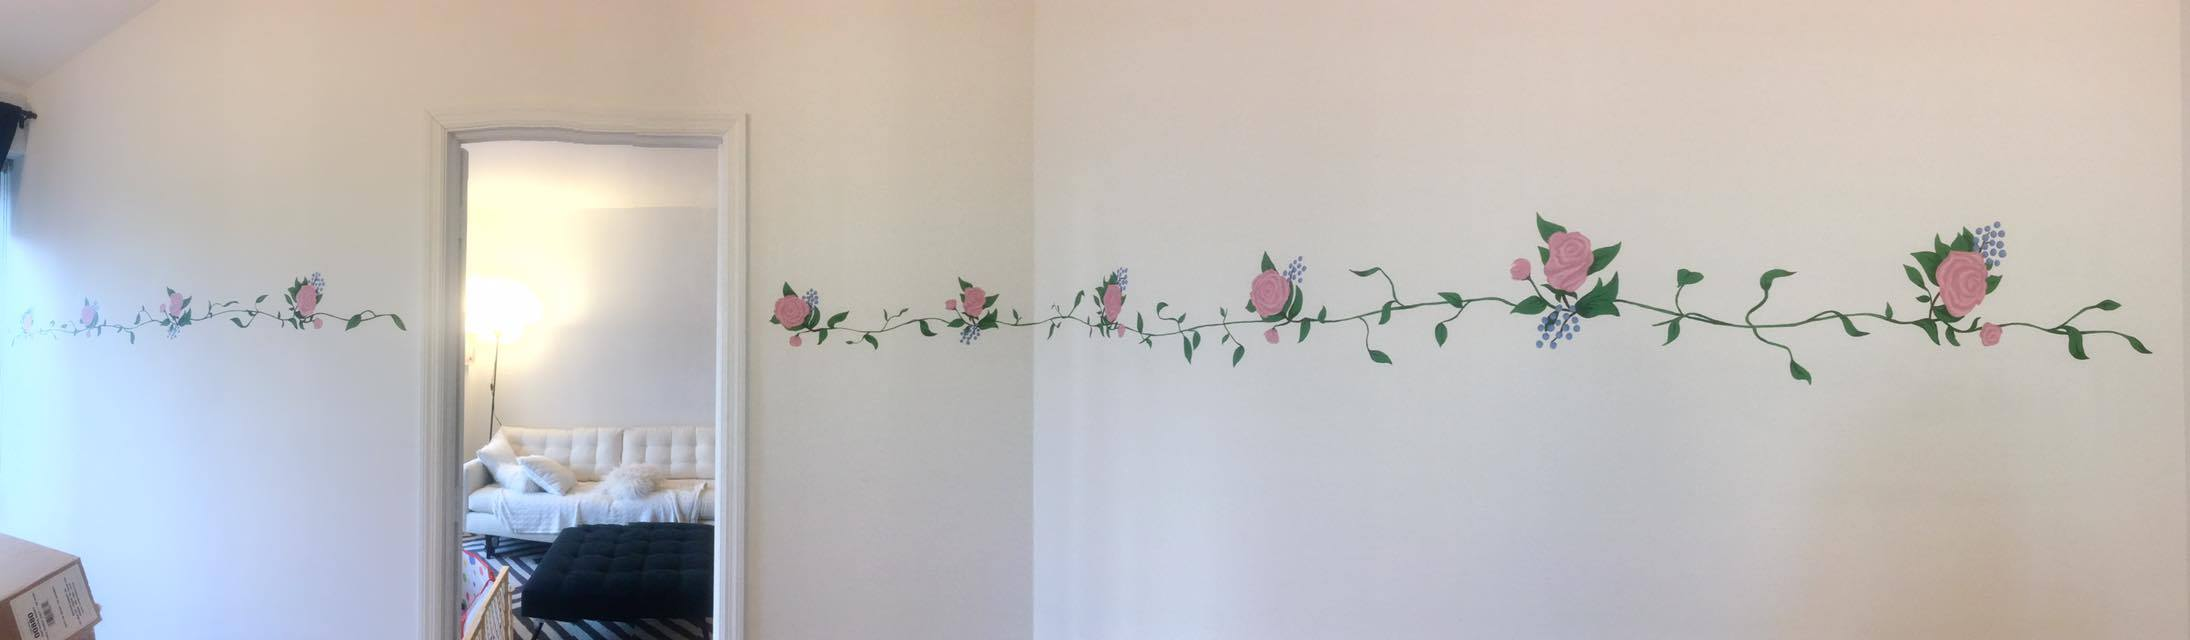 Completed Project: Indoor Rose Mural - 2016